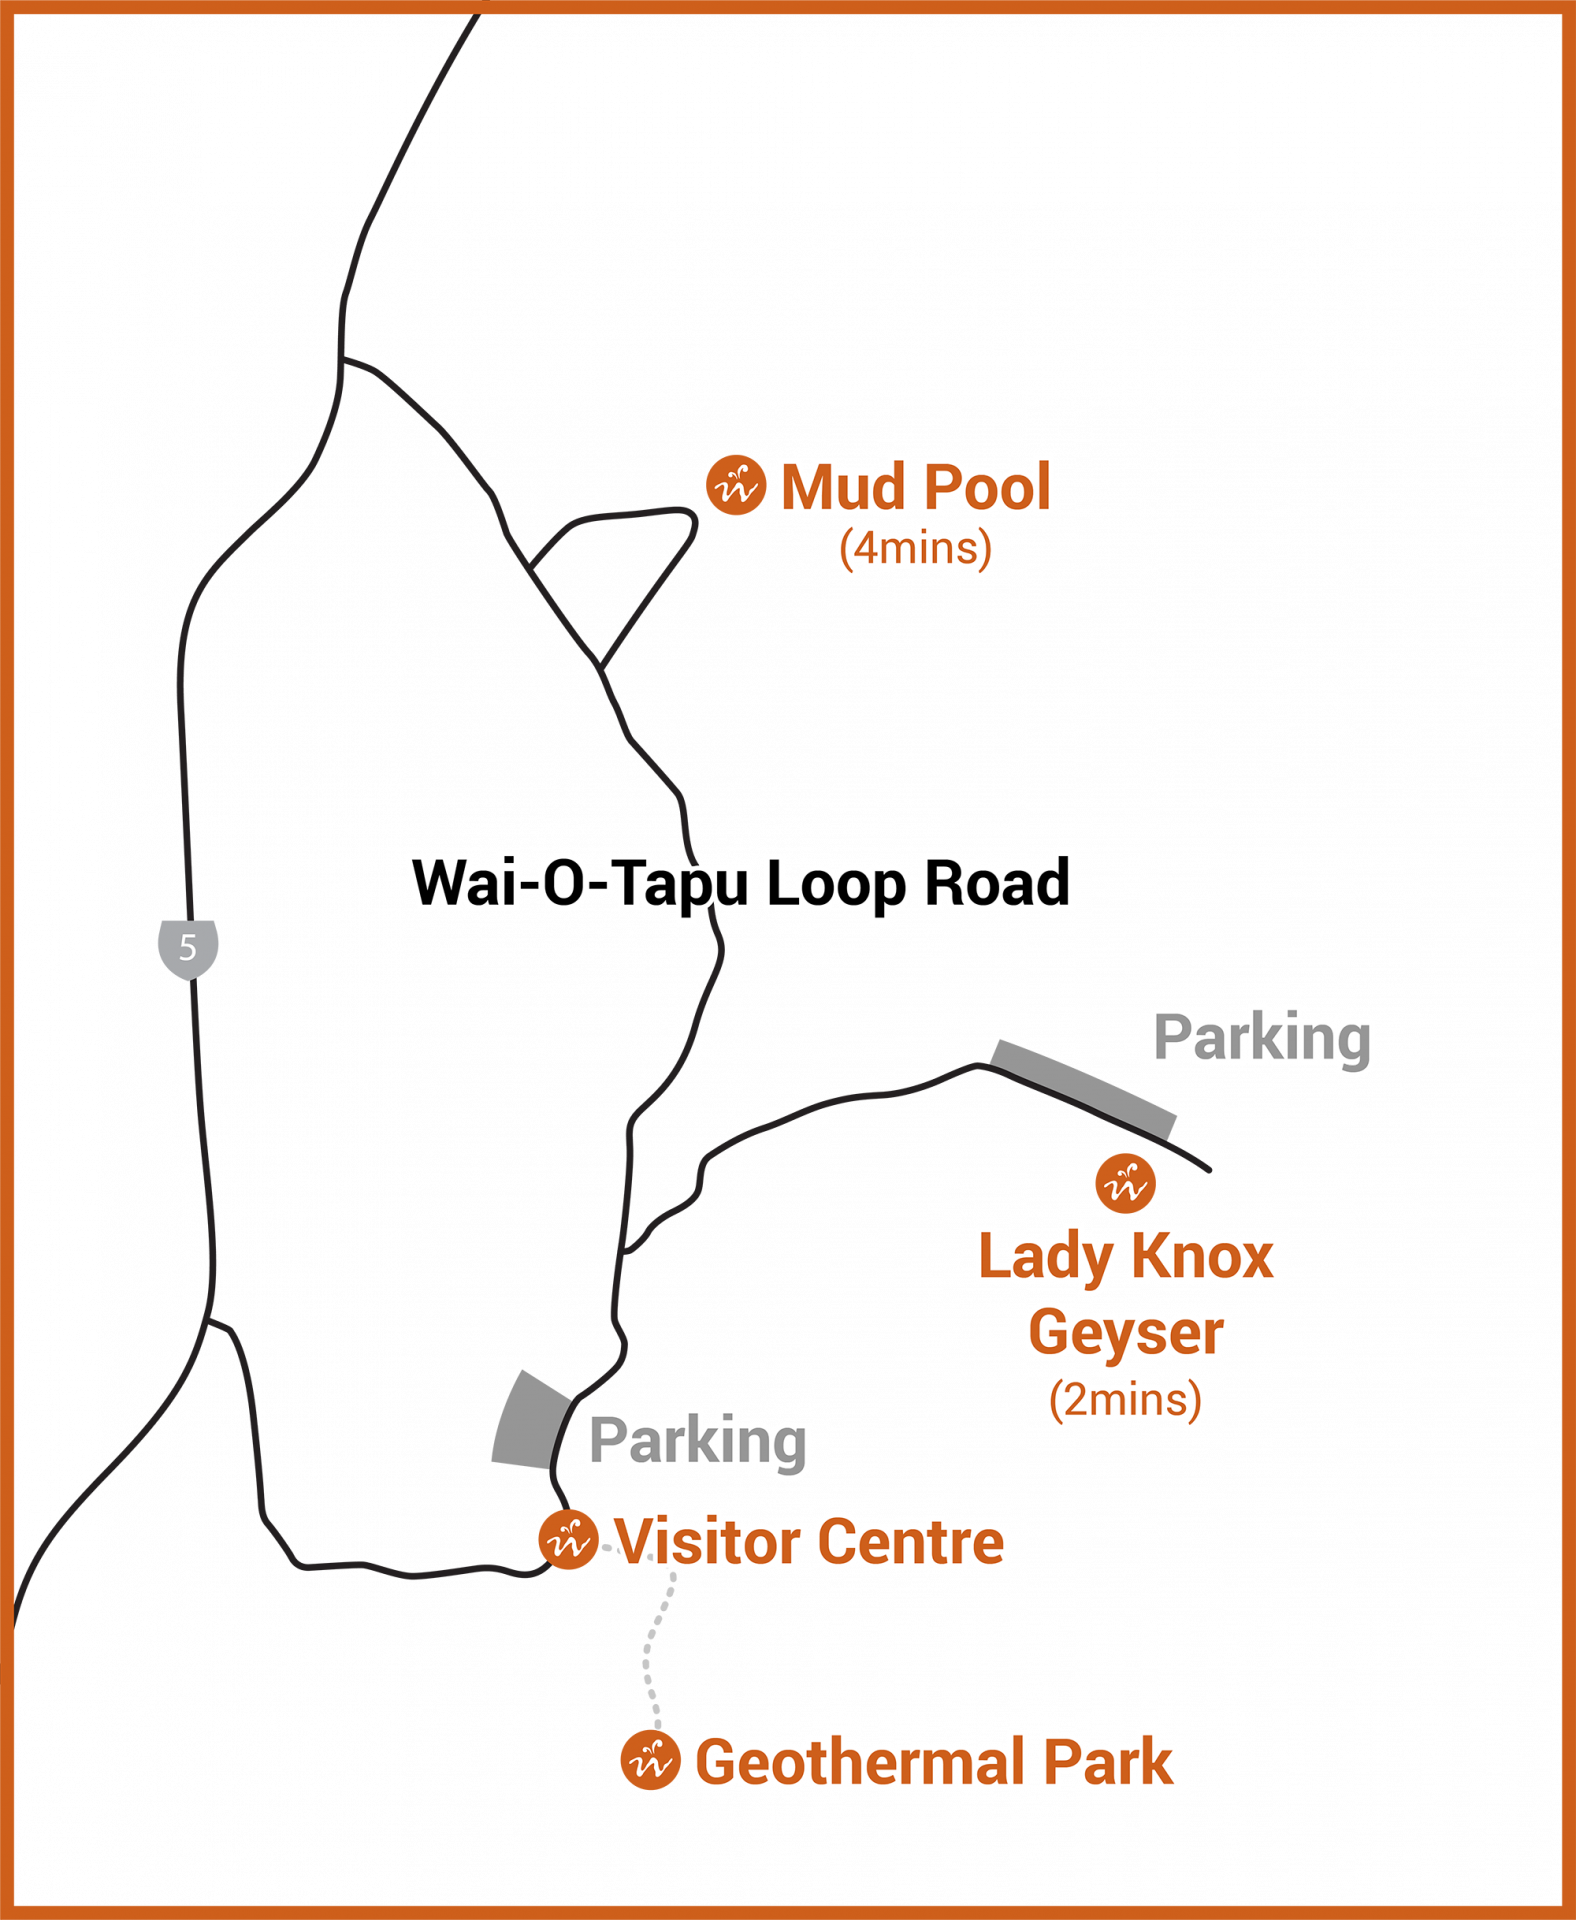 Plan Your Visit | Hours, Directions, Parking, Sightseeing